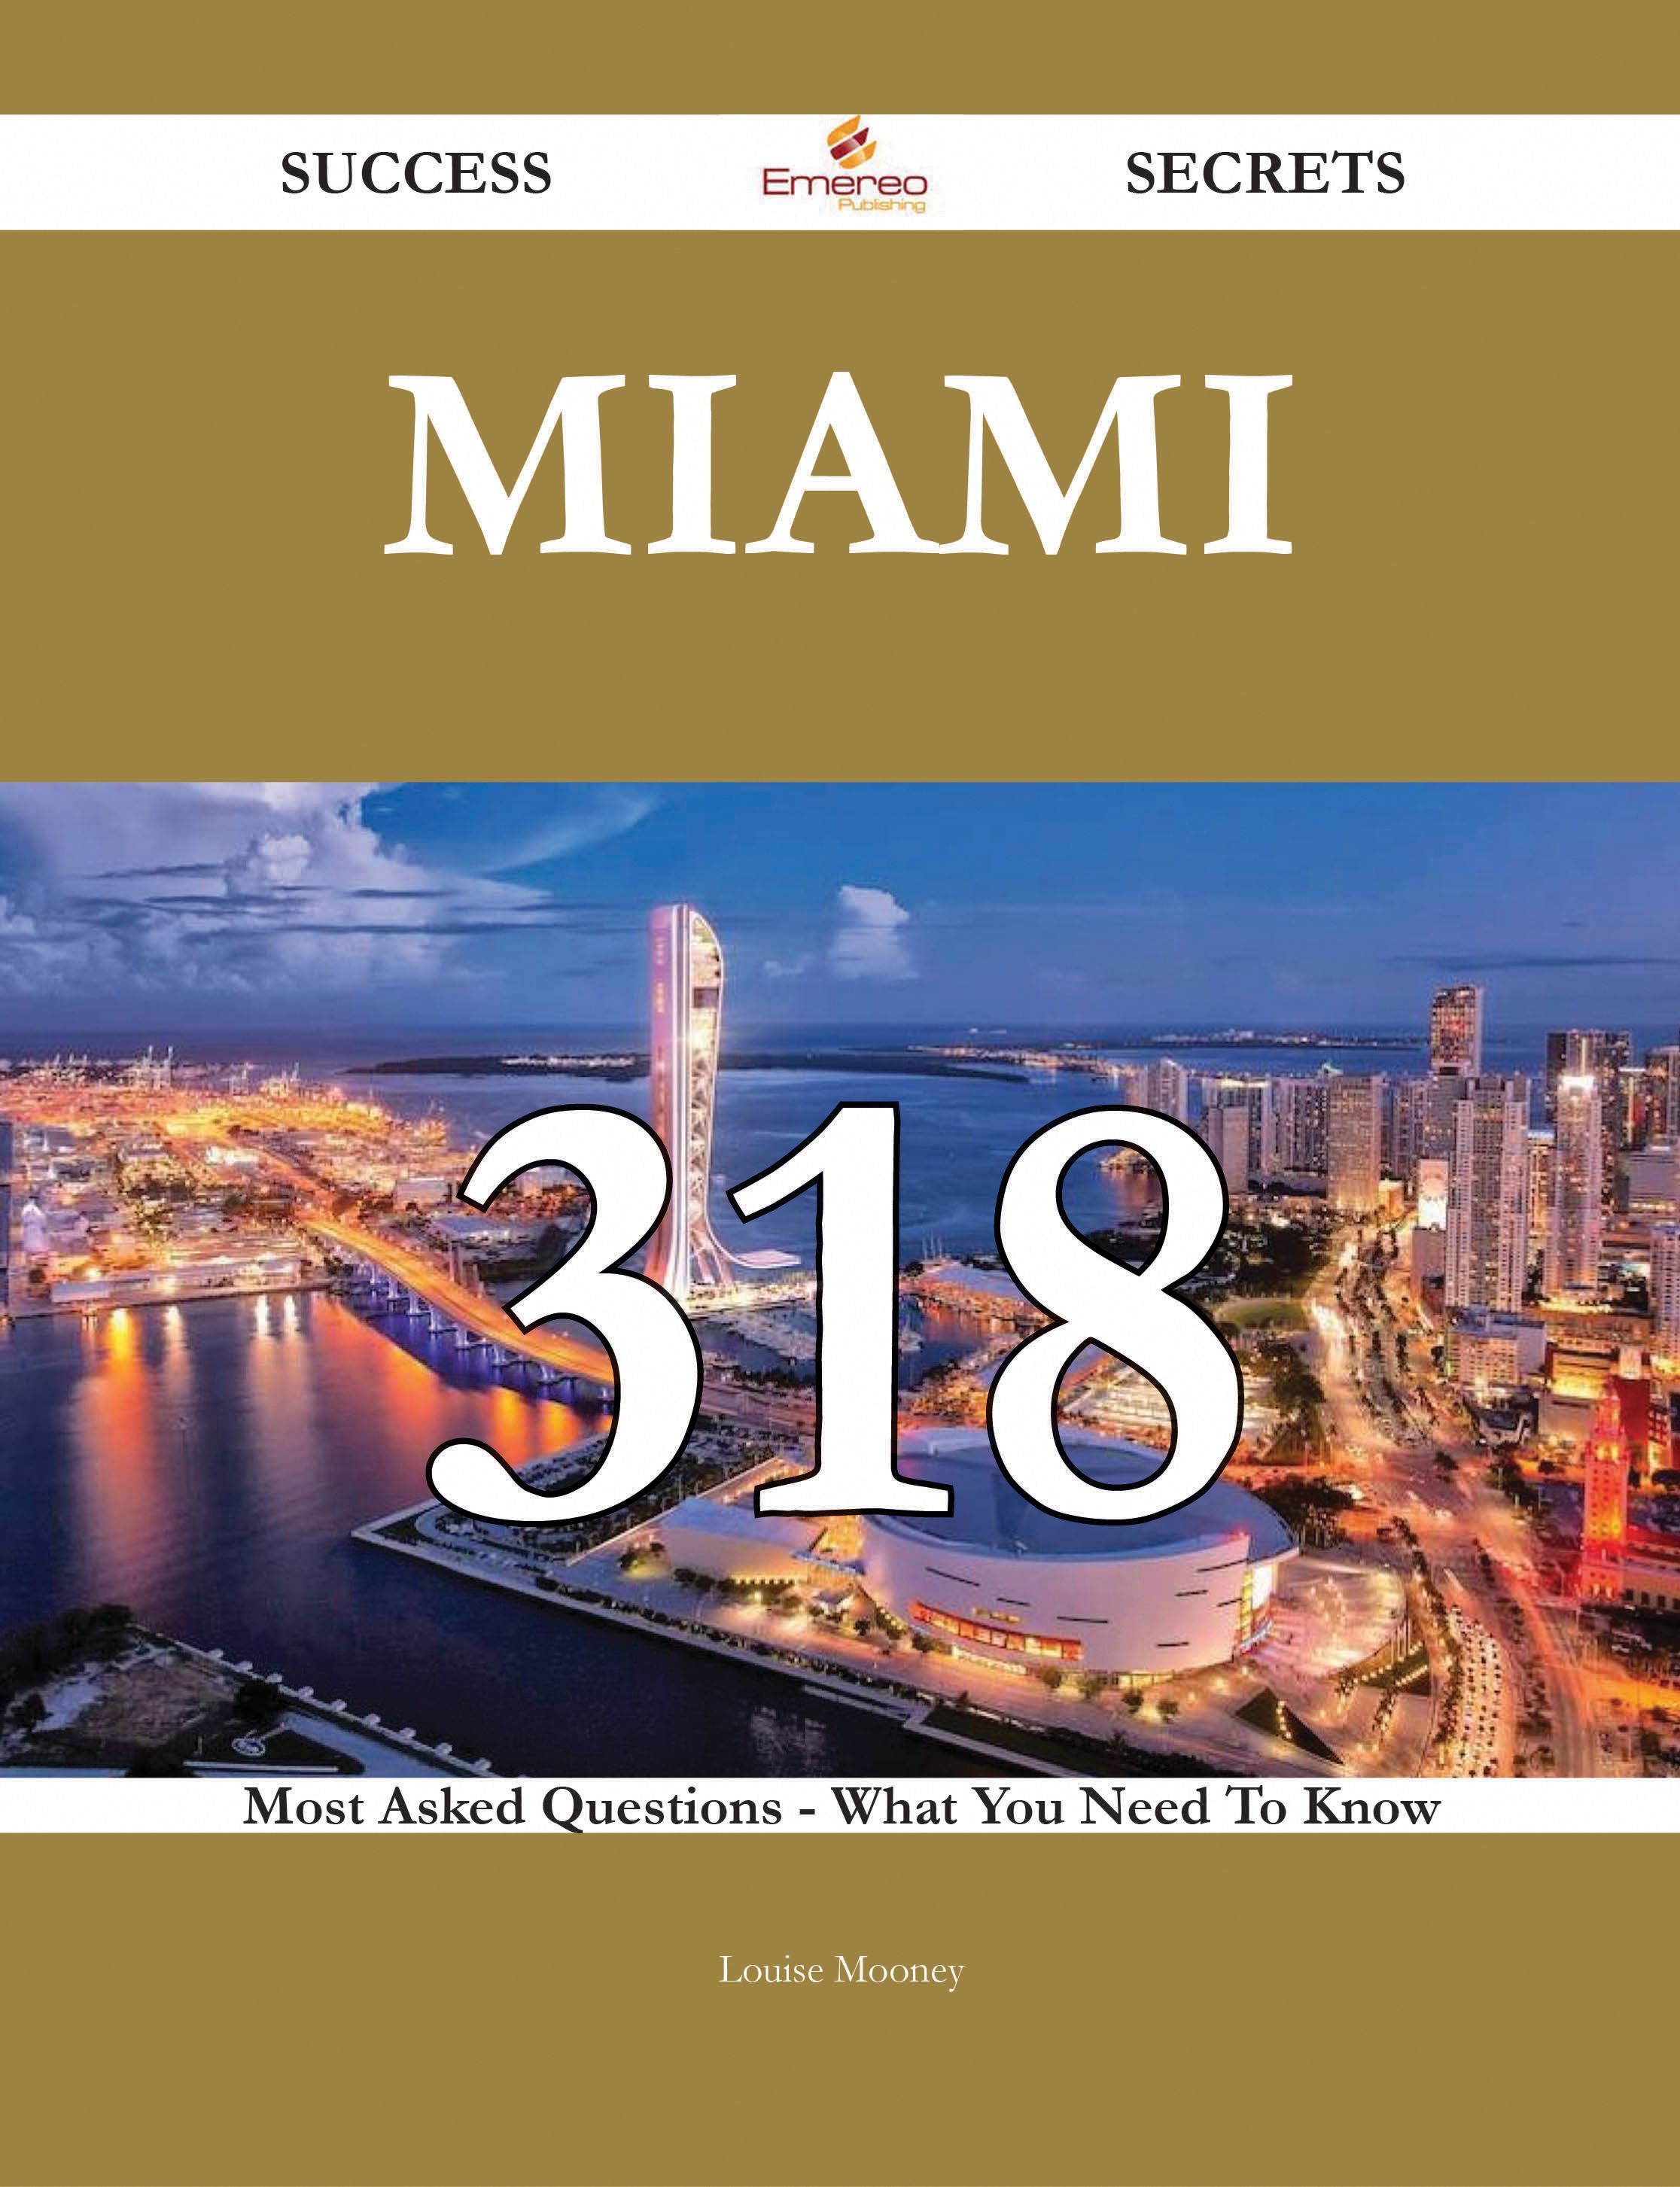 Miami 318 Success Secrets - 318 Most Asked Questions On #Miami - What You Need To Know http://apsense.cc/afbf14